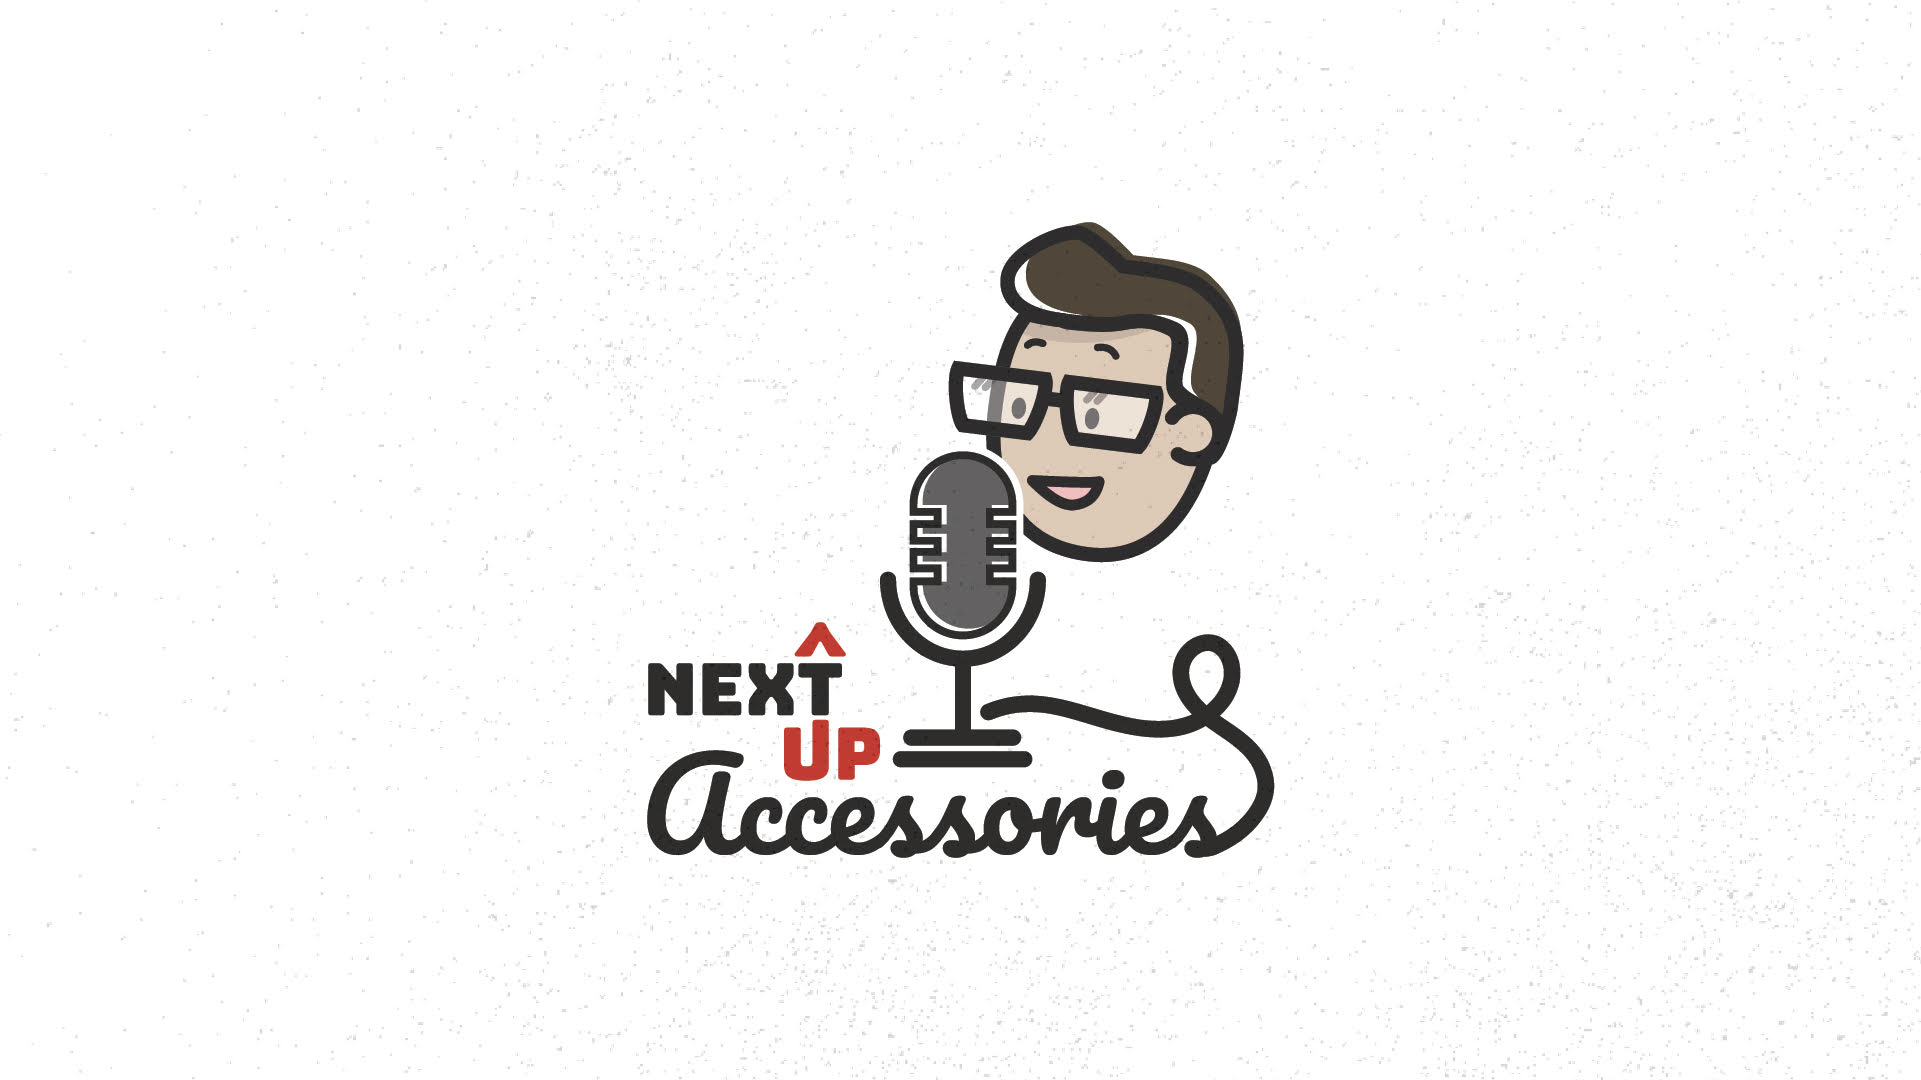 Up Next, Accessories Logo